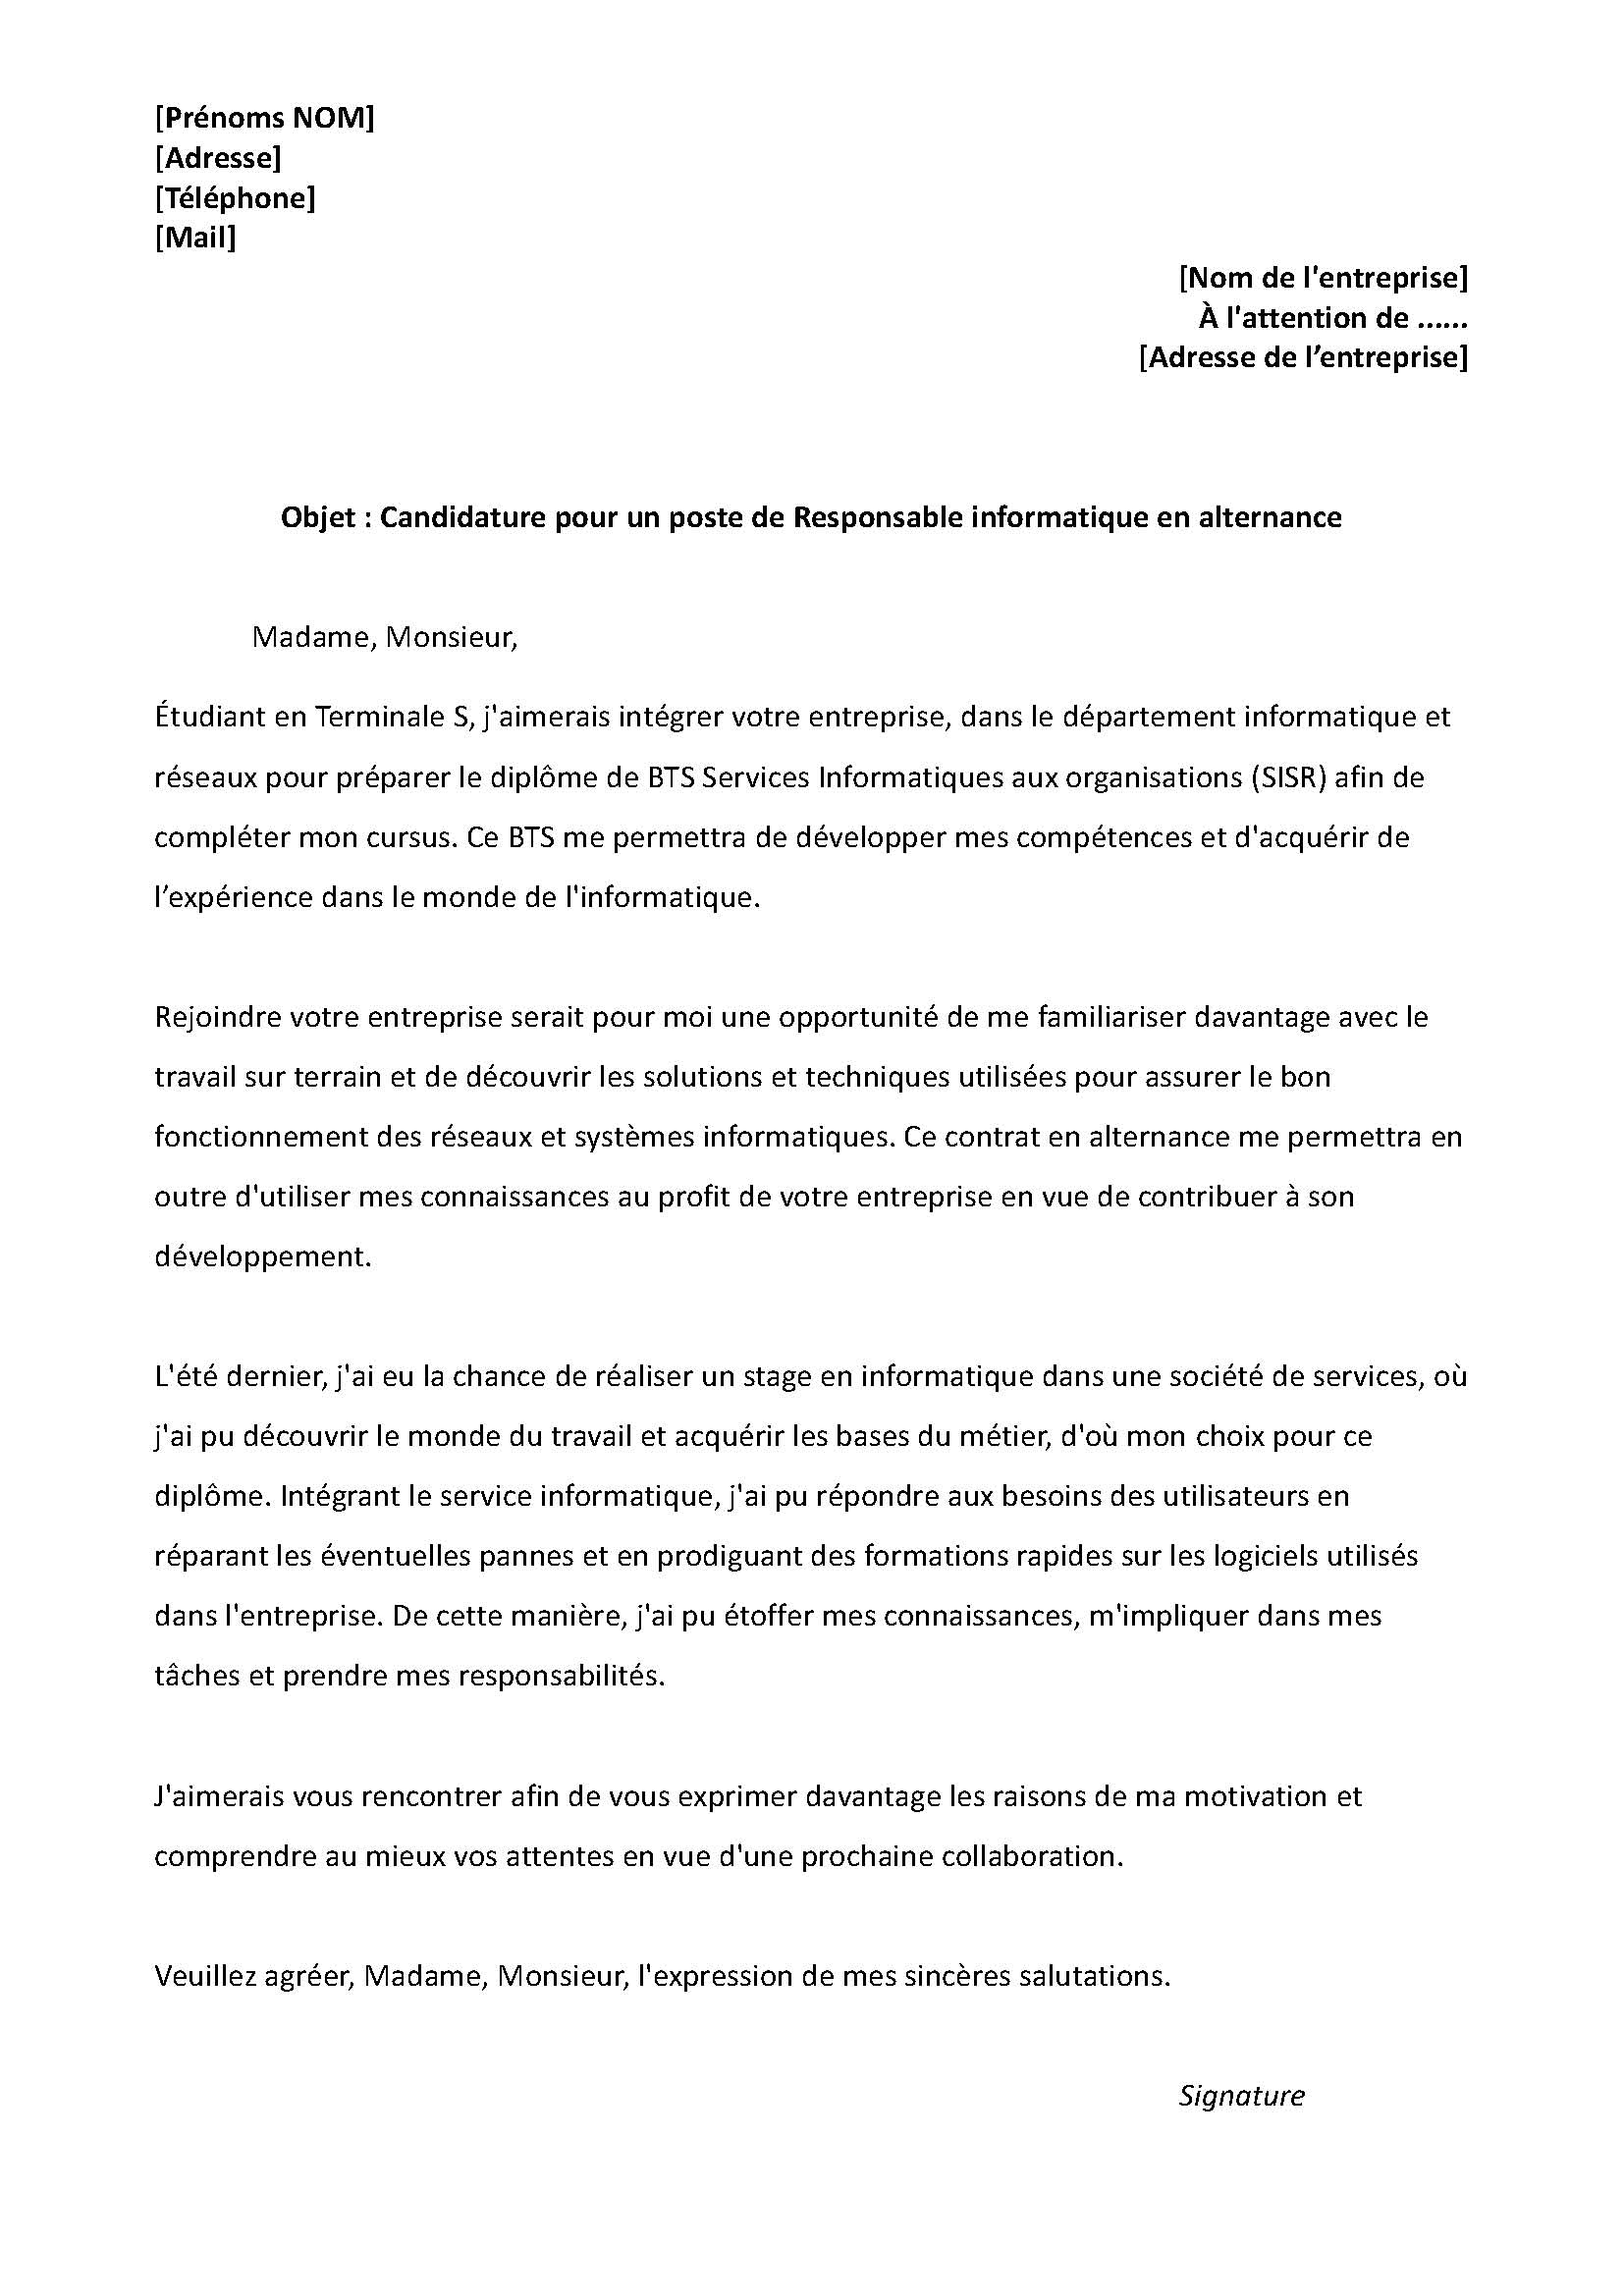 mod u00e8le lettre de motivation - responsable informatique en alternance